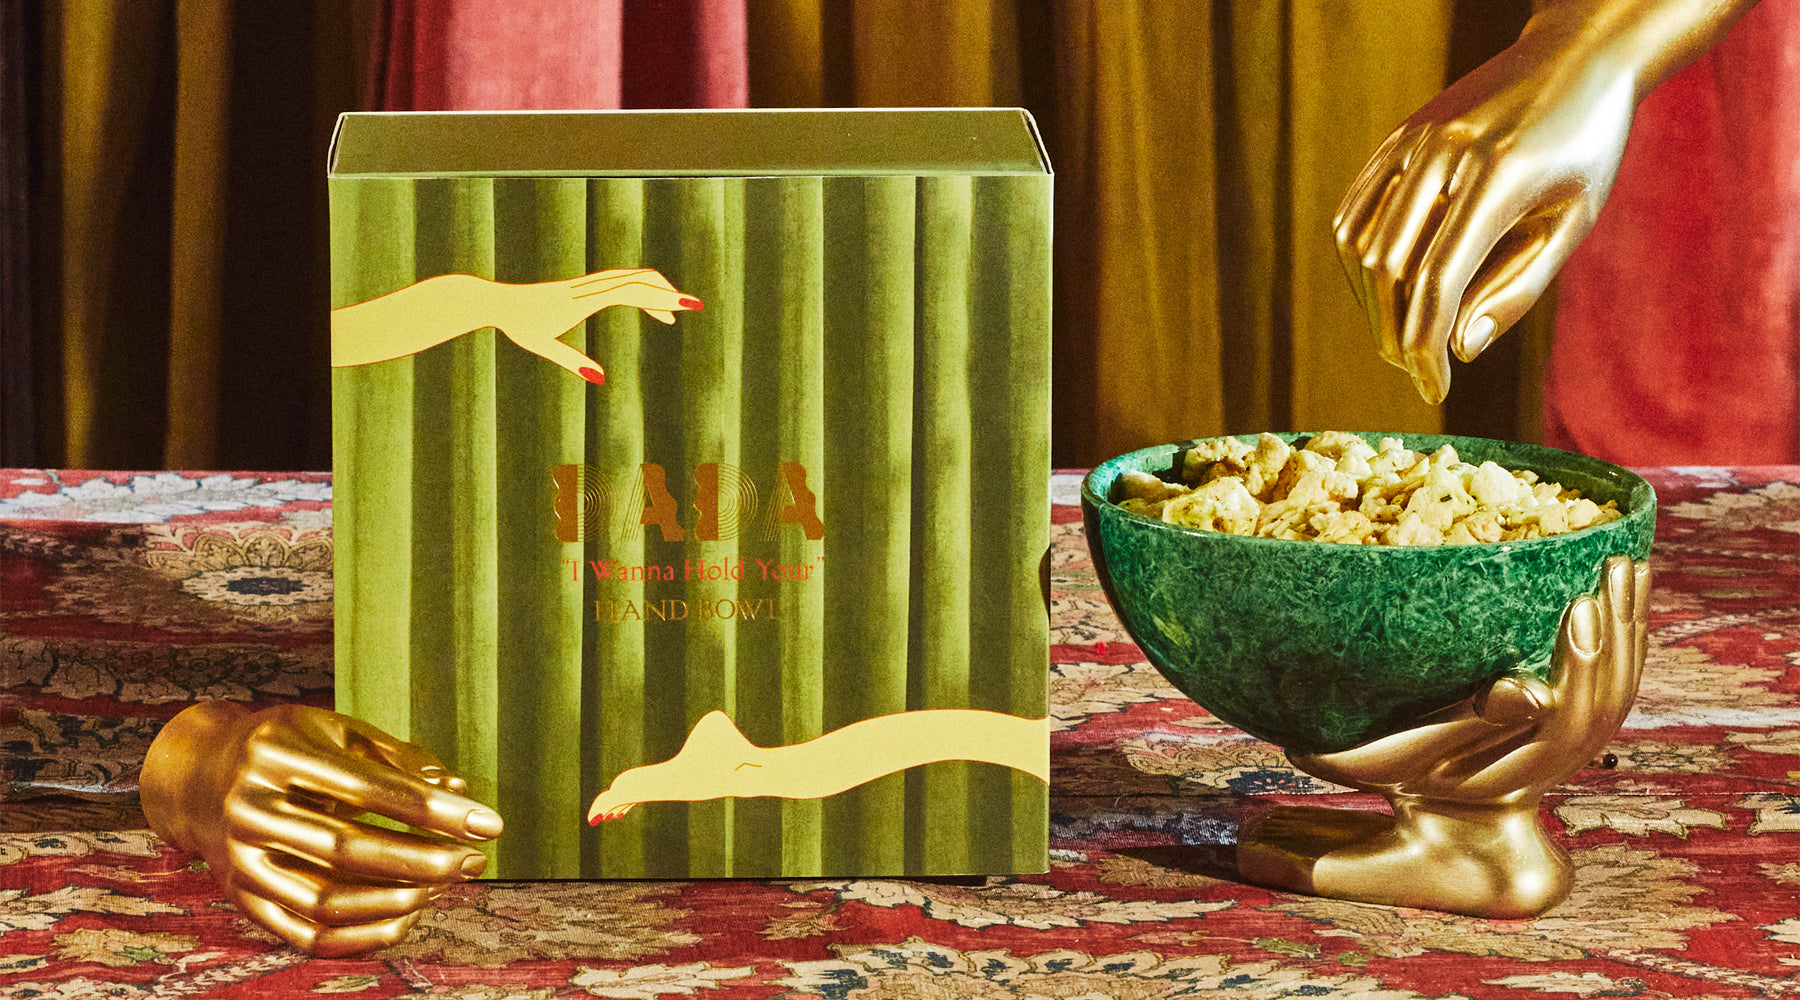 hand, bowl, malachite, gold, resin, packaging, snacks, serving bowl, dada daily, make decadence a ritual, elevate your snacking moment